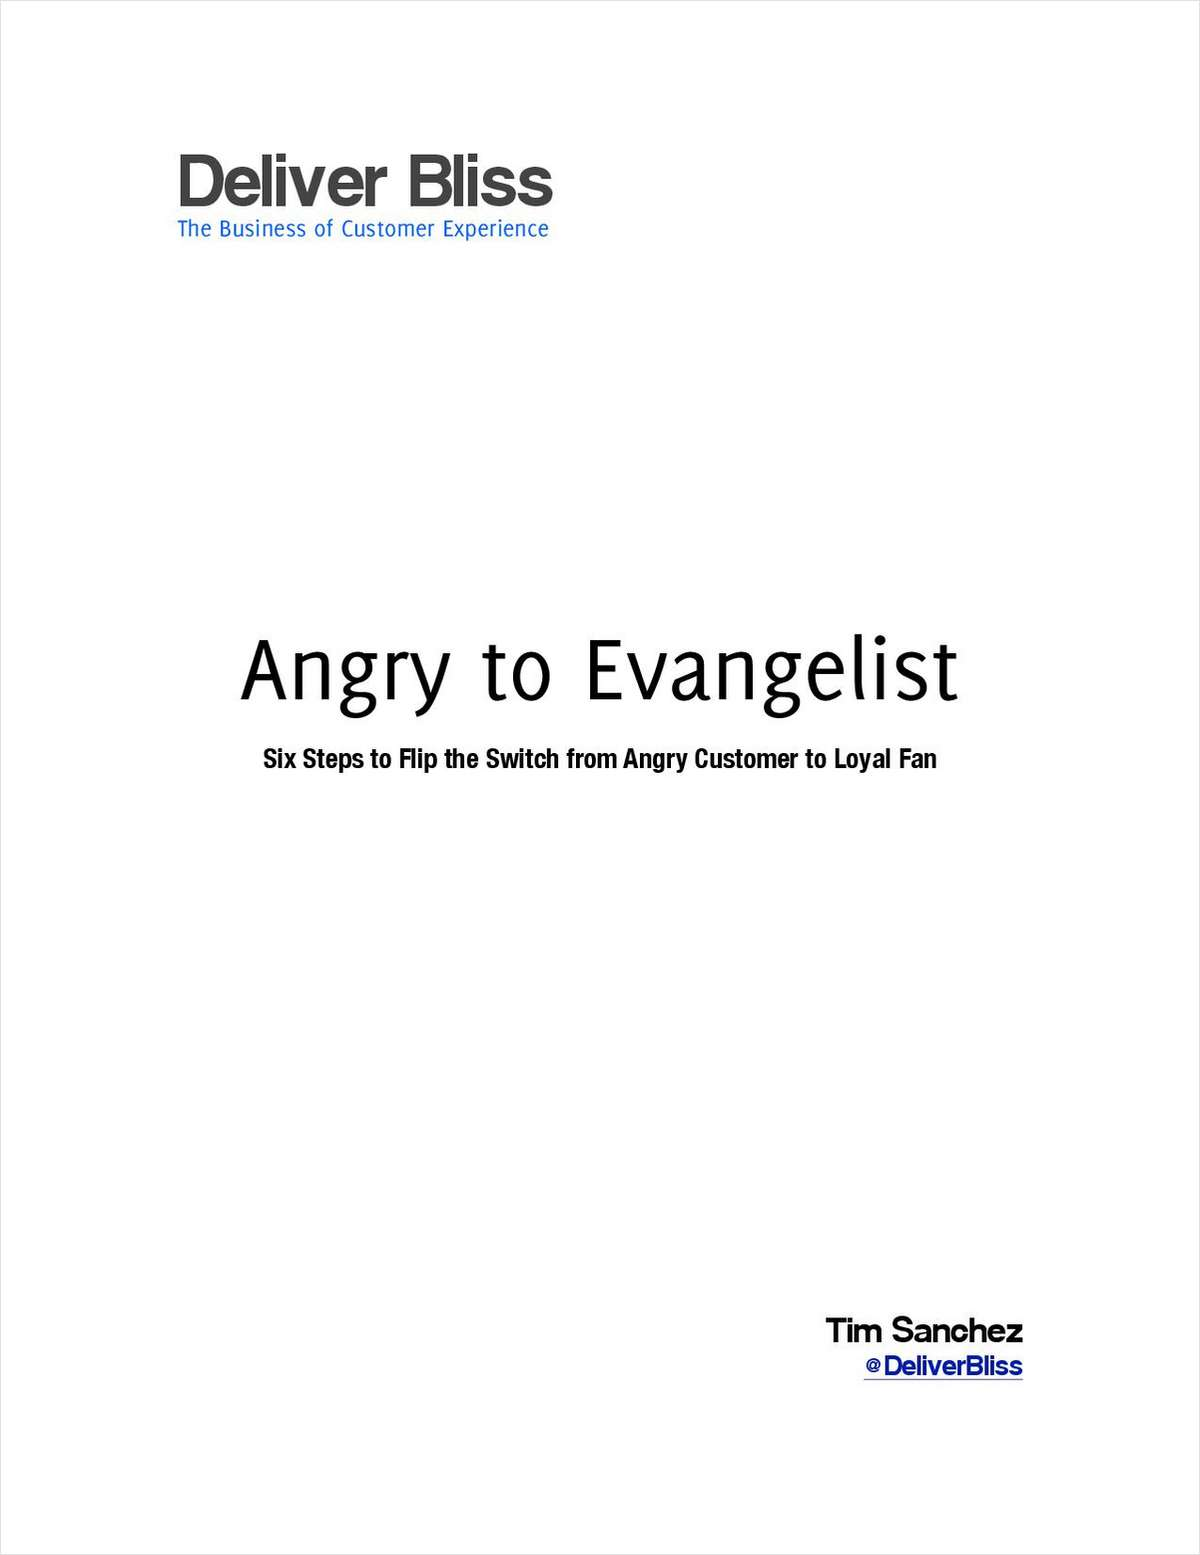 Angry to Evangelist - Six Steps to Flip the Switch from Angry Customer to Loyal Fan